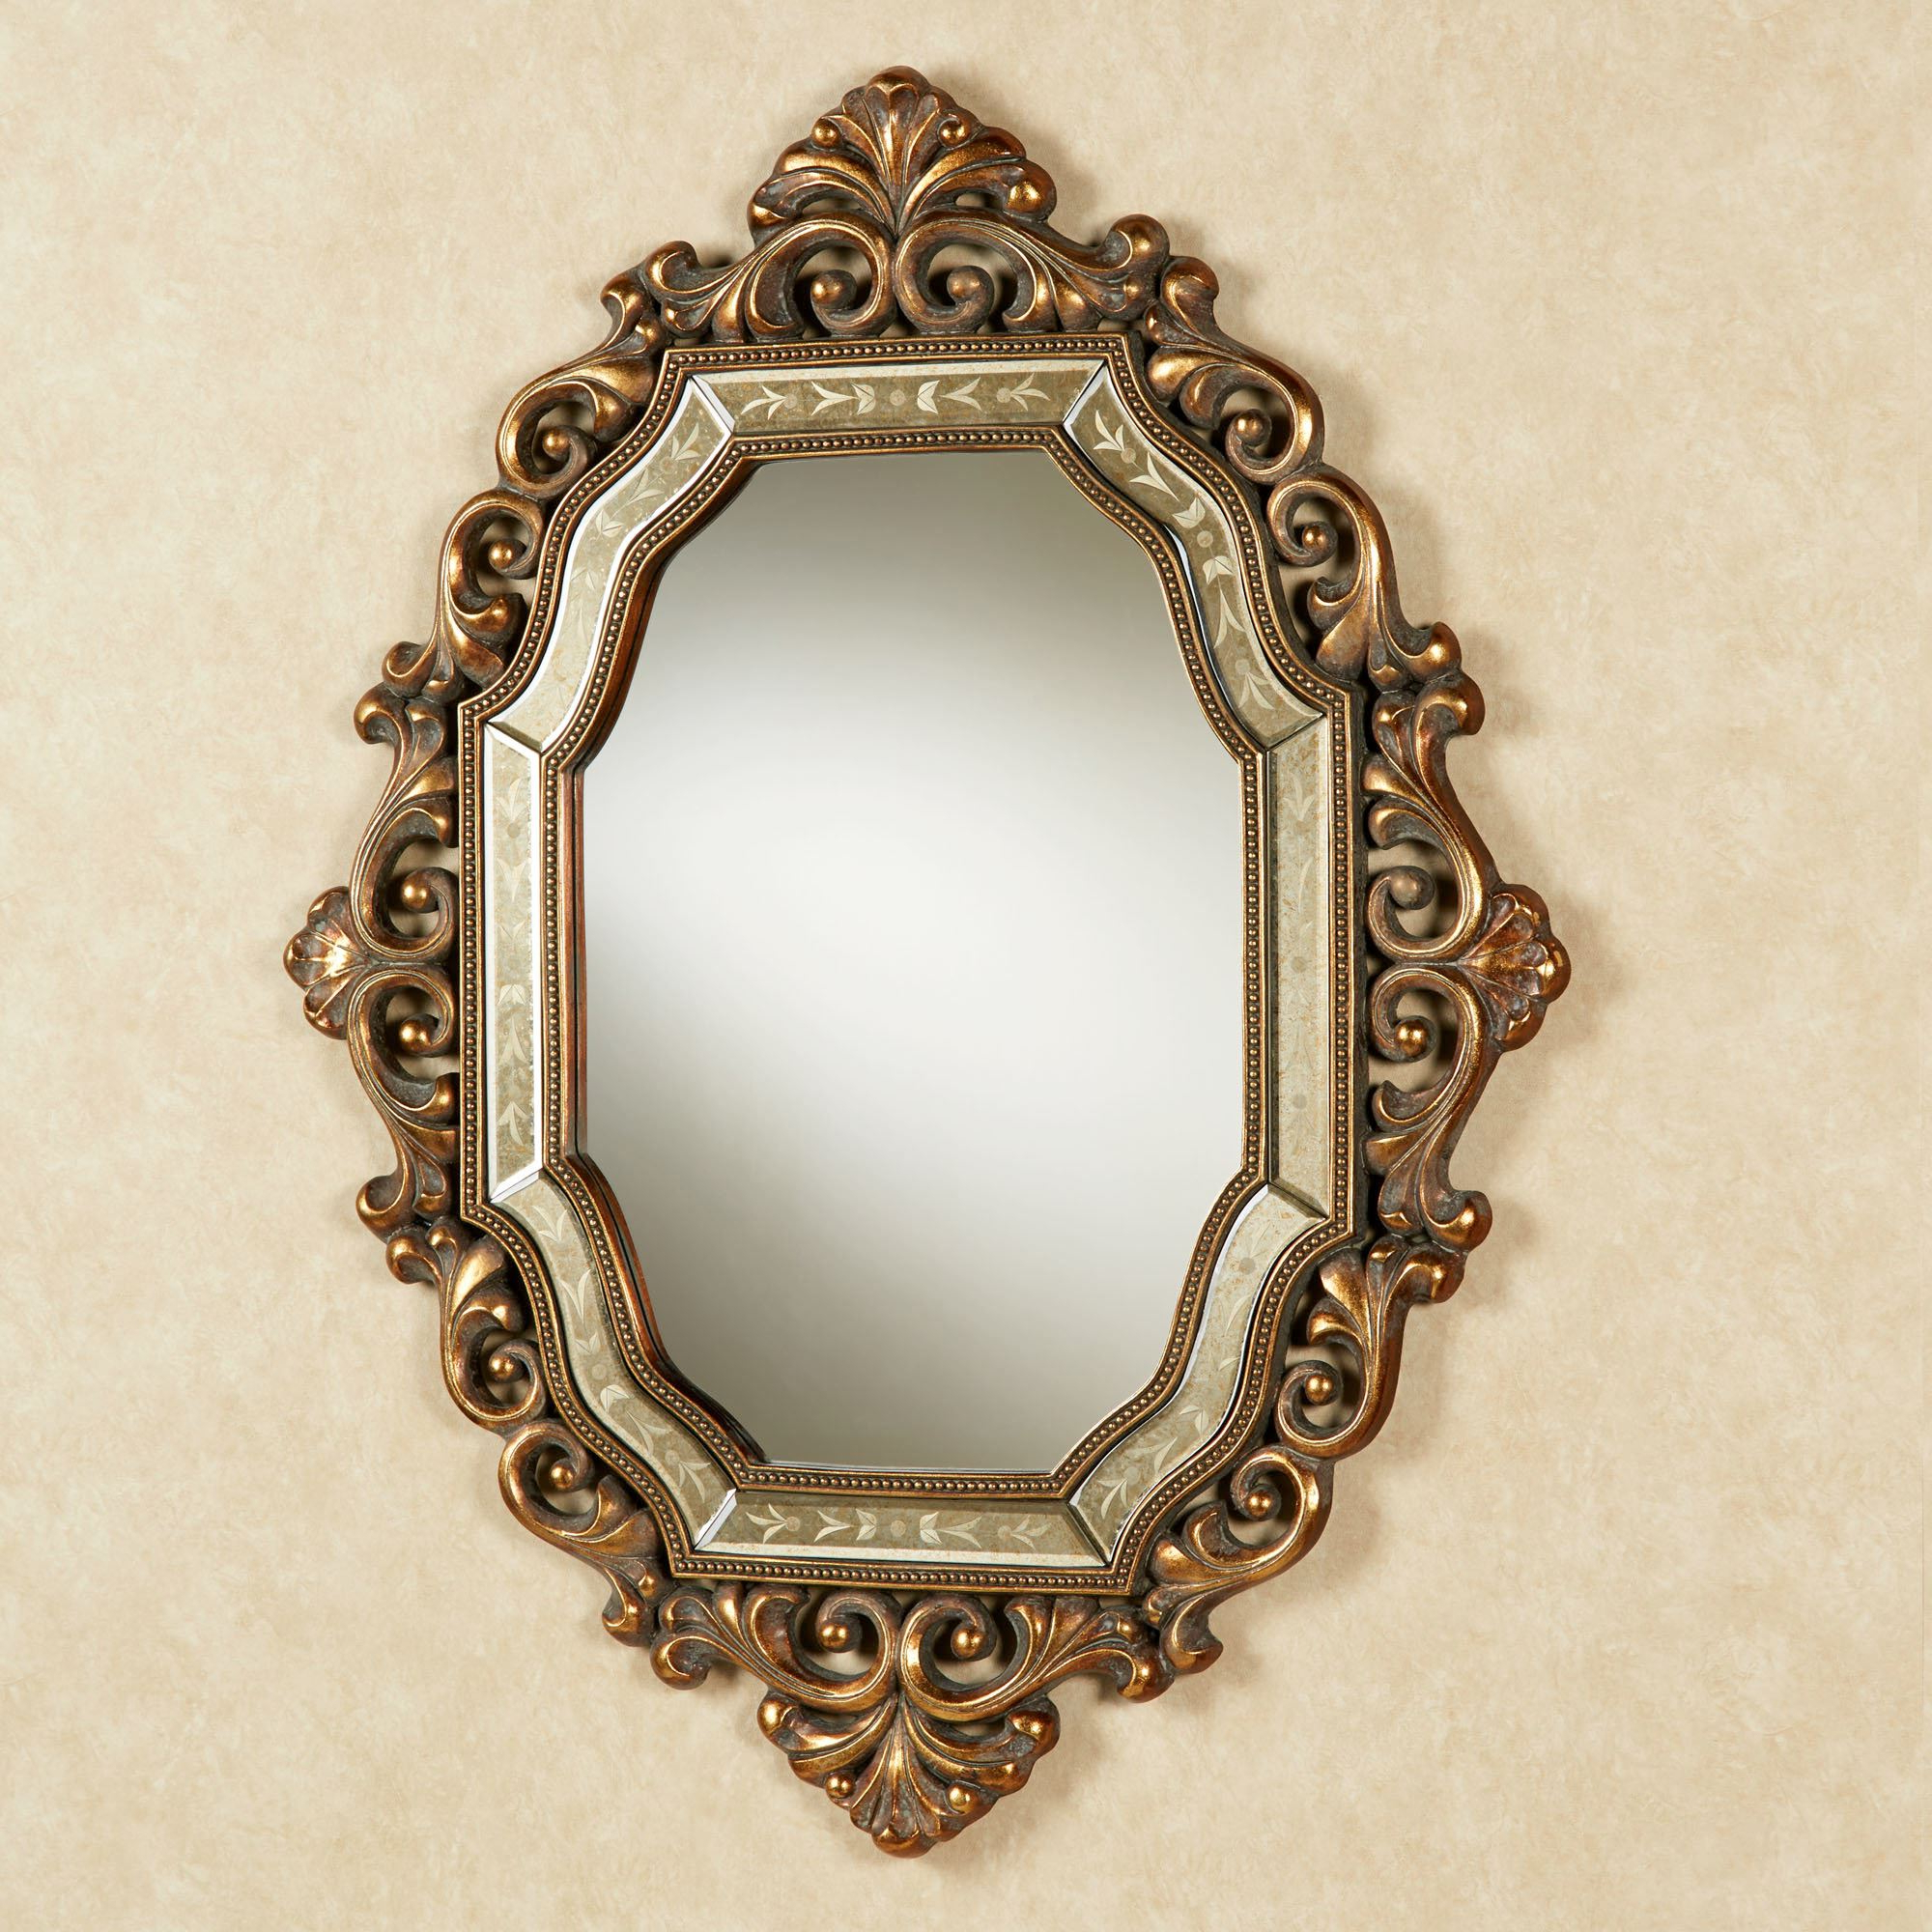 Antique Oval Wall Mirrors For 2020 Verena Old World Wall Mirror (Gallery 14 of 20)